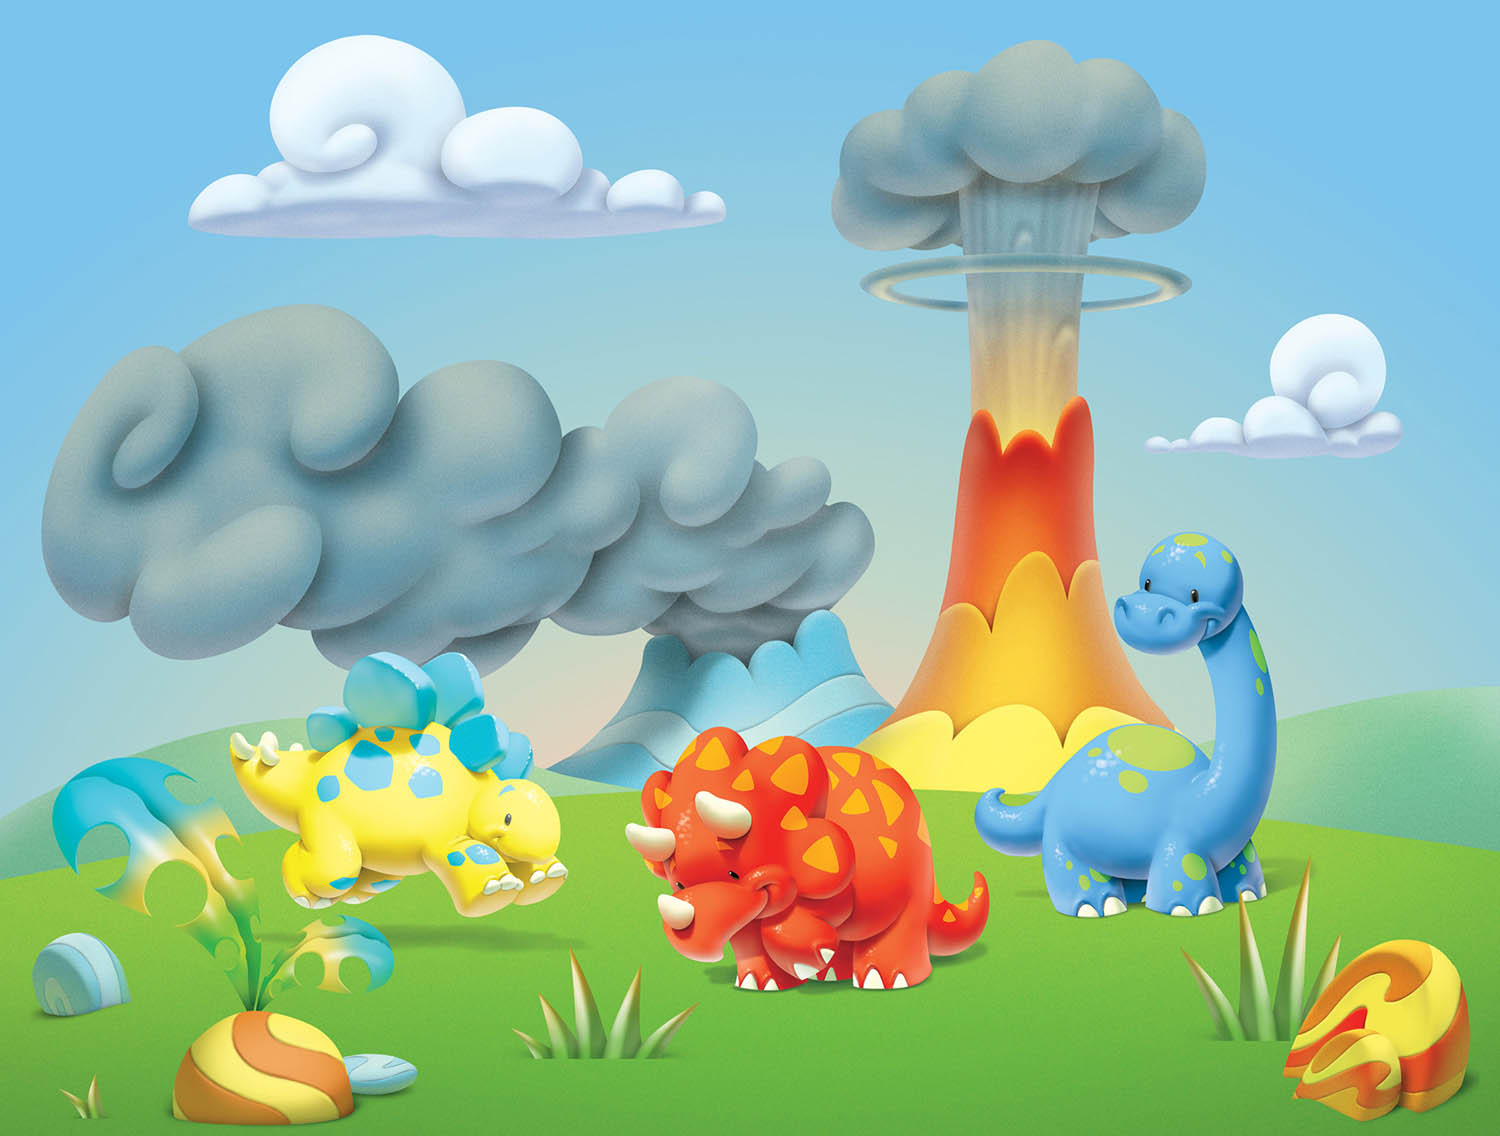 READY Dinosaur clipart and BG.jpg